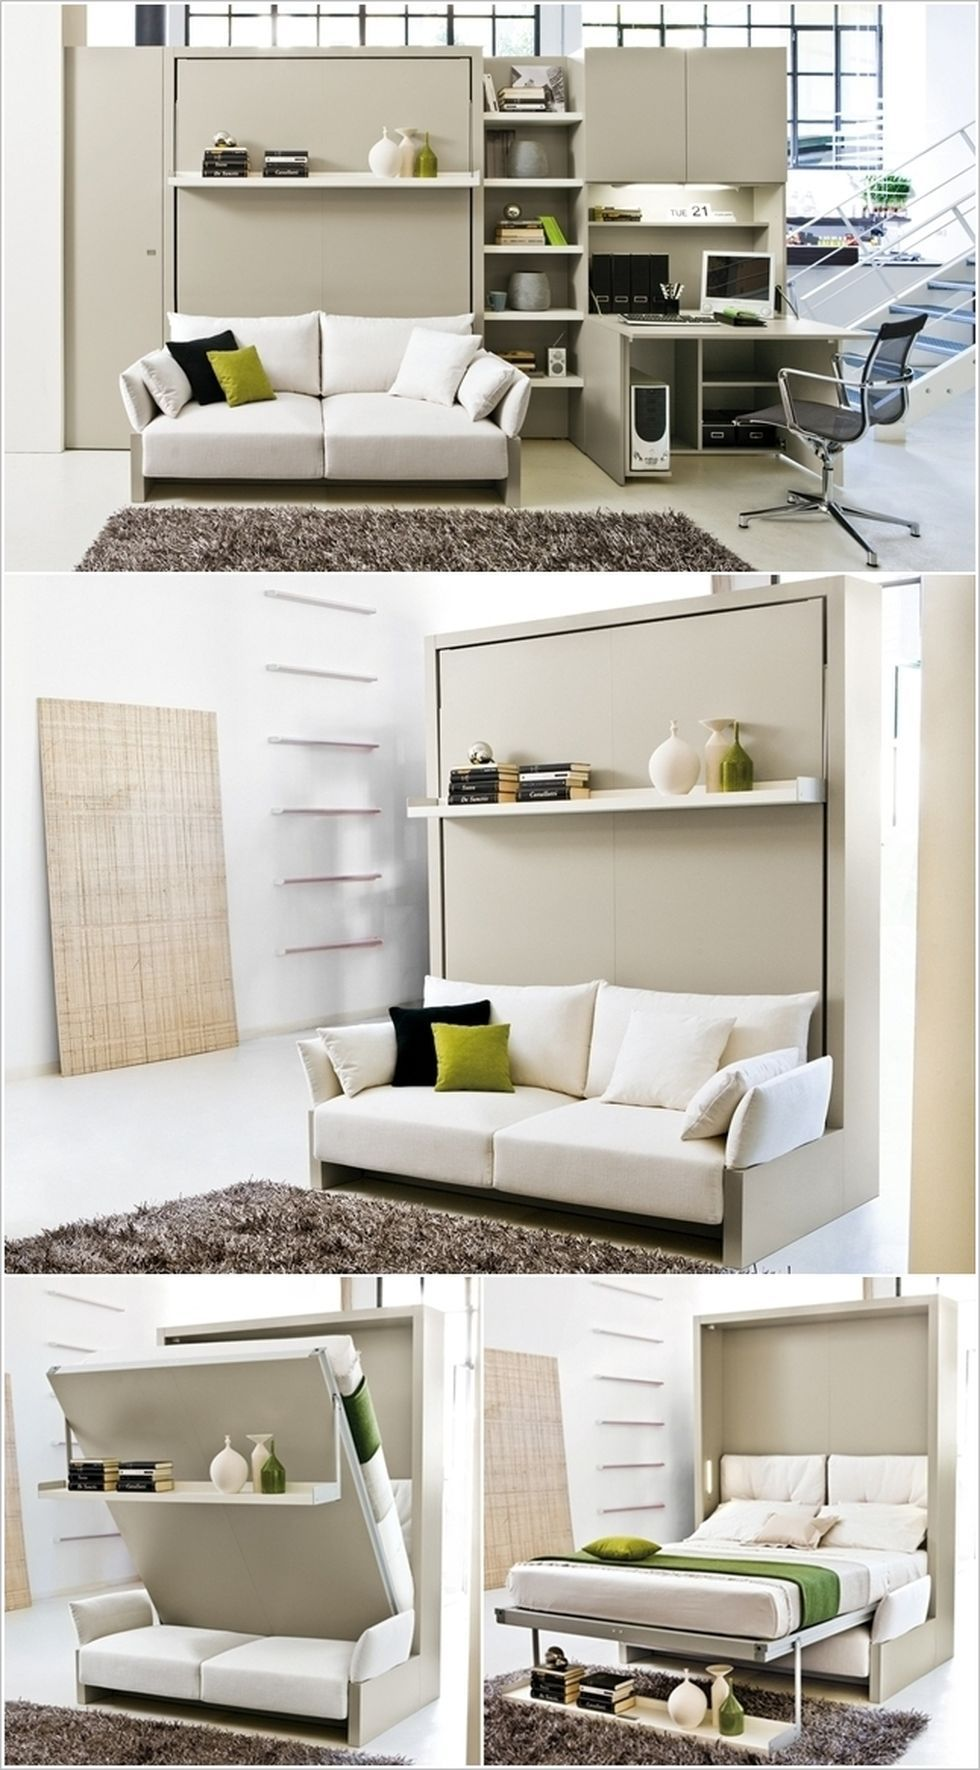 60 Creative Folding Bed Ideas for Home Space Saving | Folding beds ...